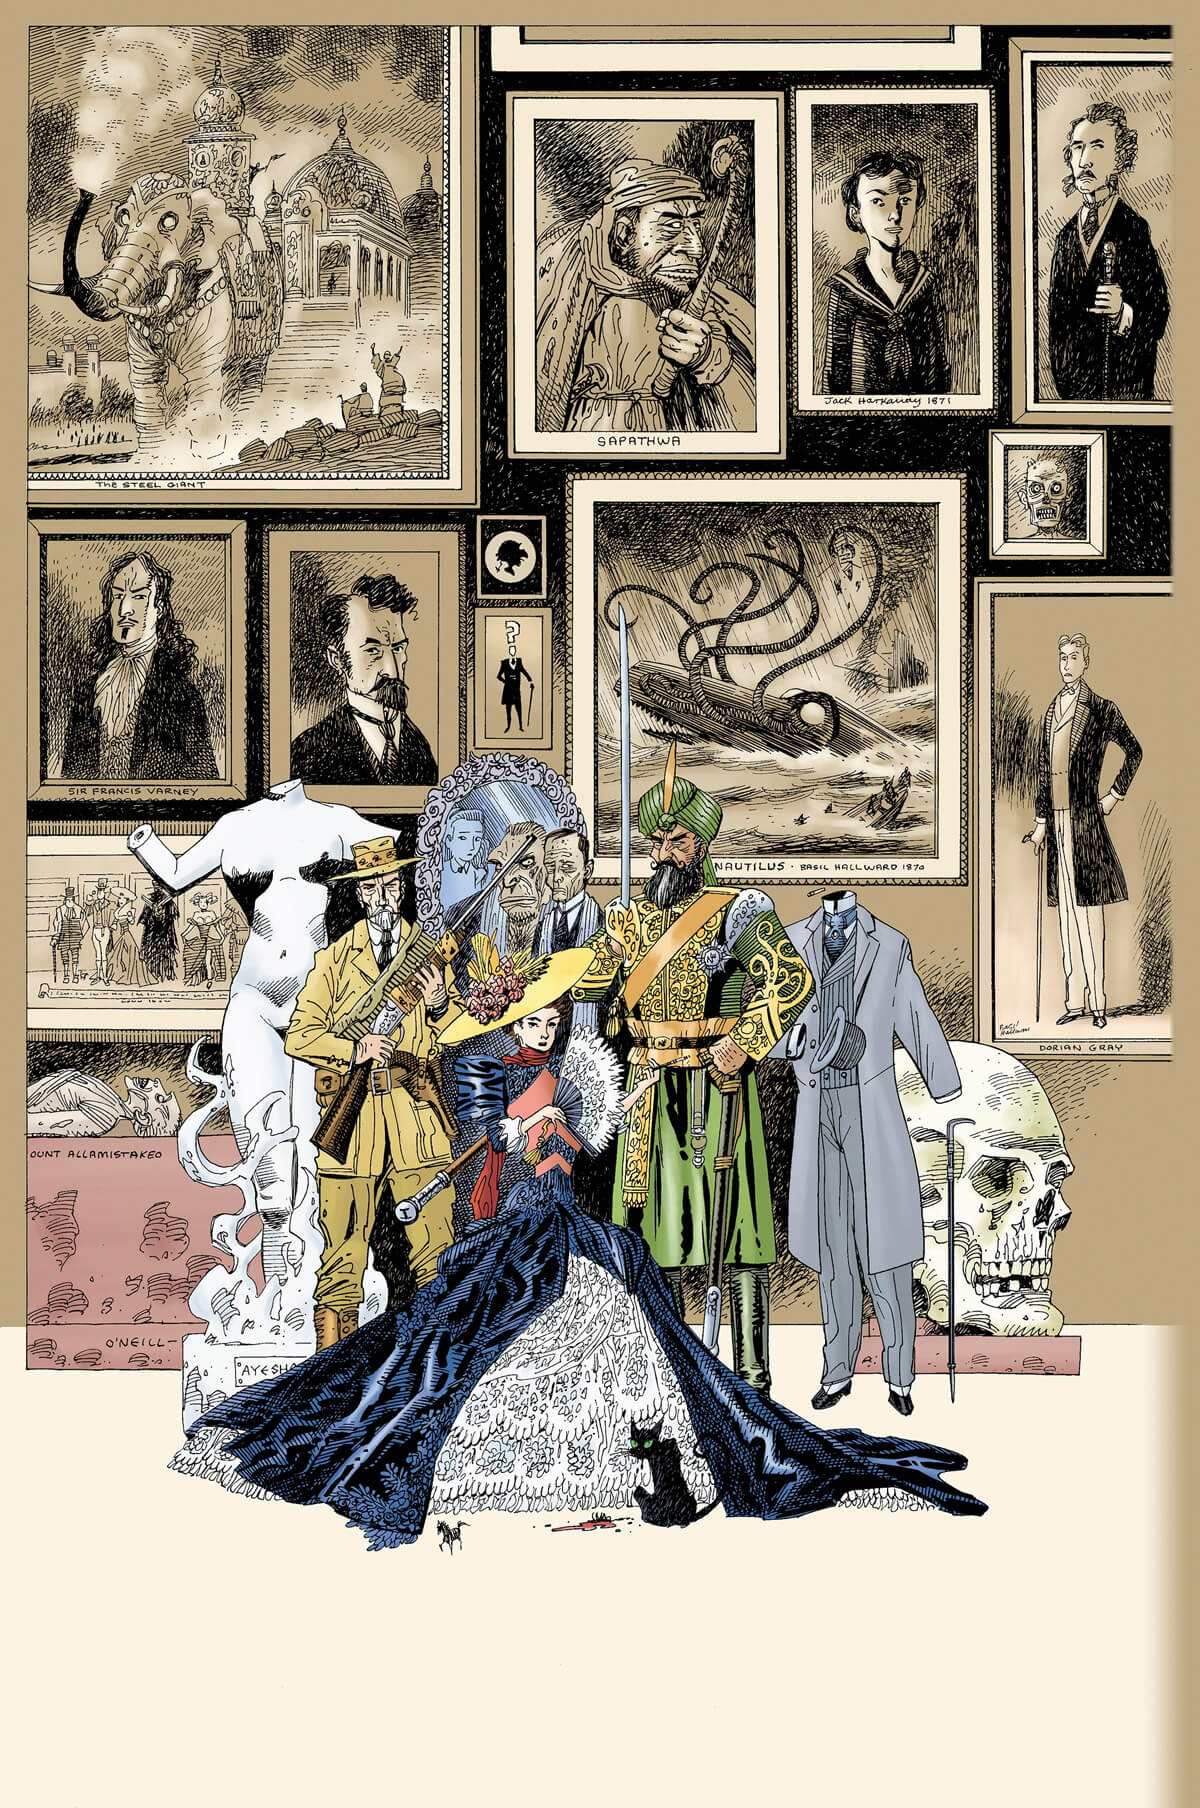 Alan Moore, the league of extraordinary gentlemen